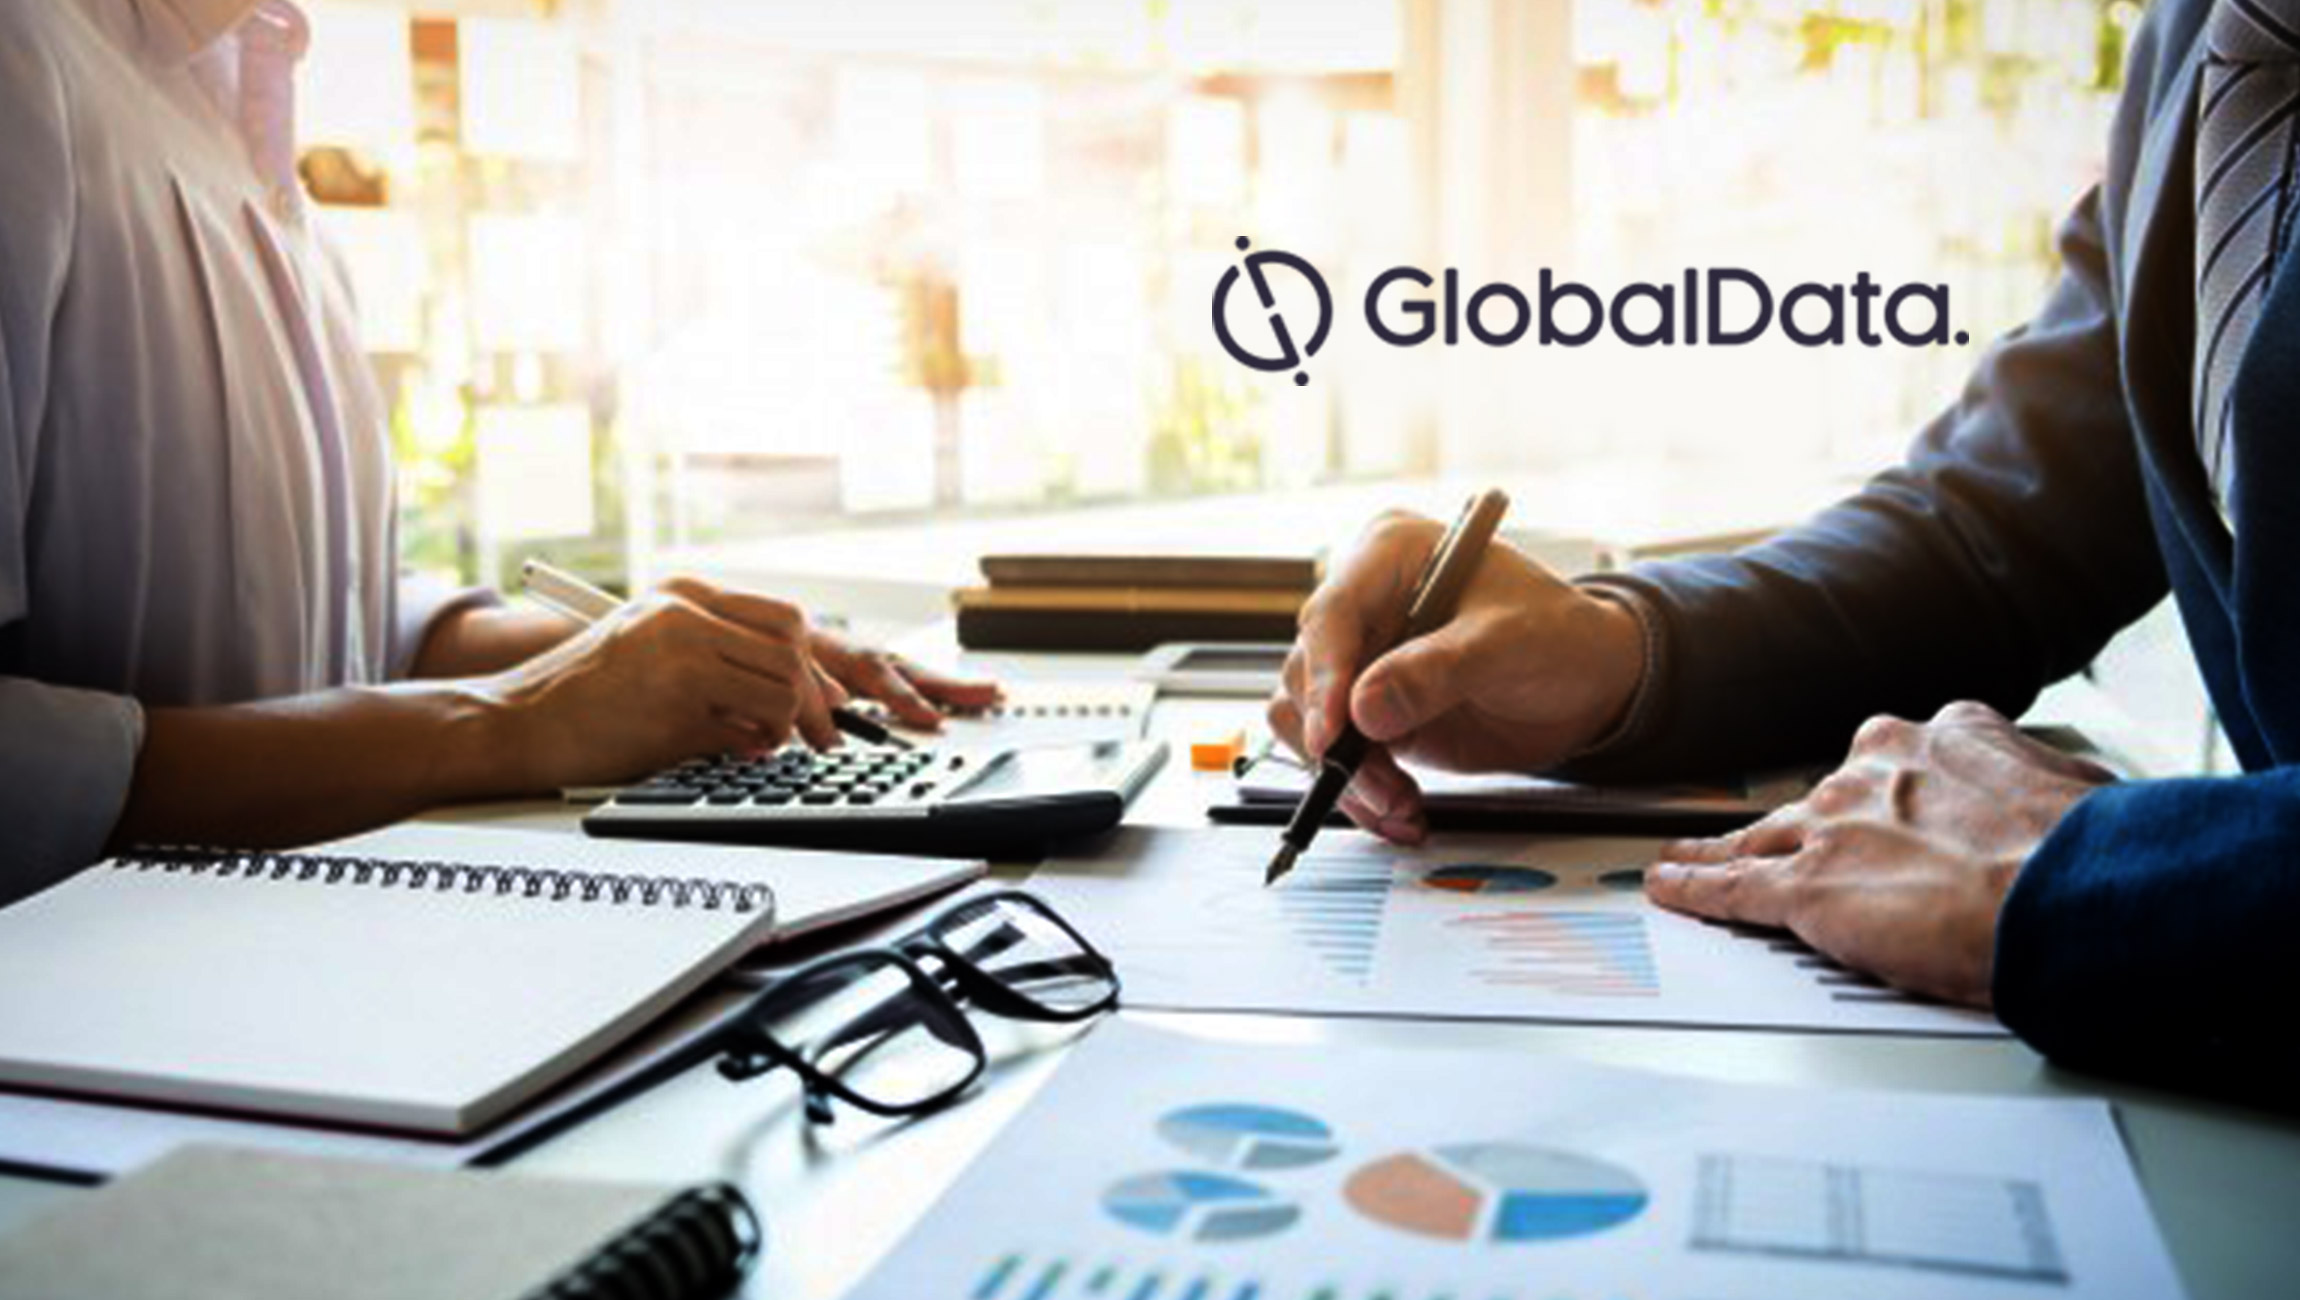 Brands Relying On Digital Tools To Simplify Shopping Needs Of Young APAC Consumers, Says GlobalData